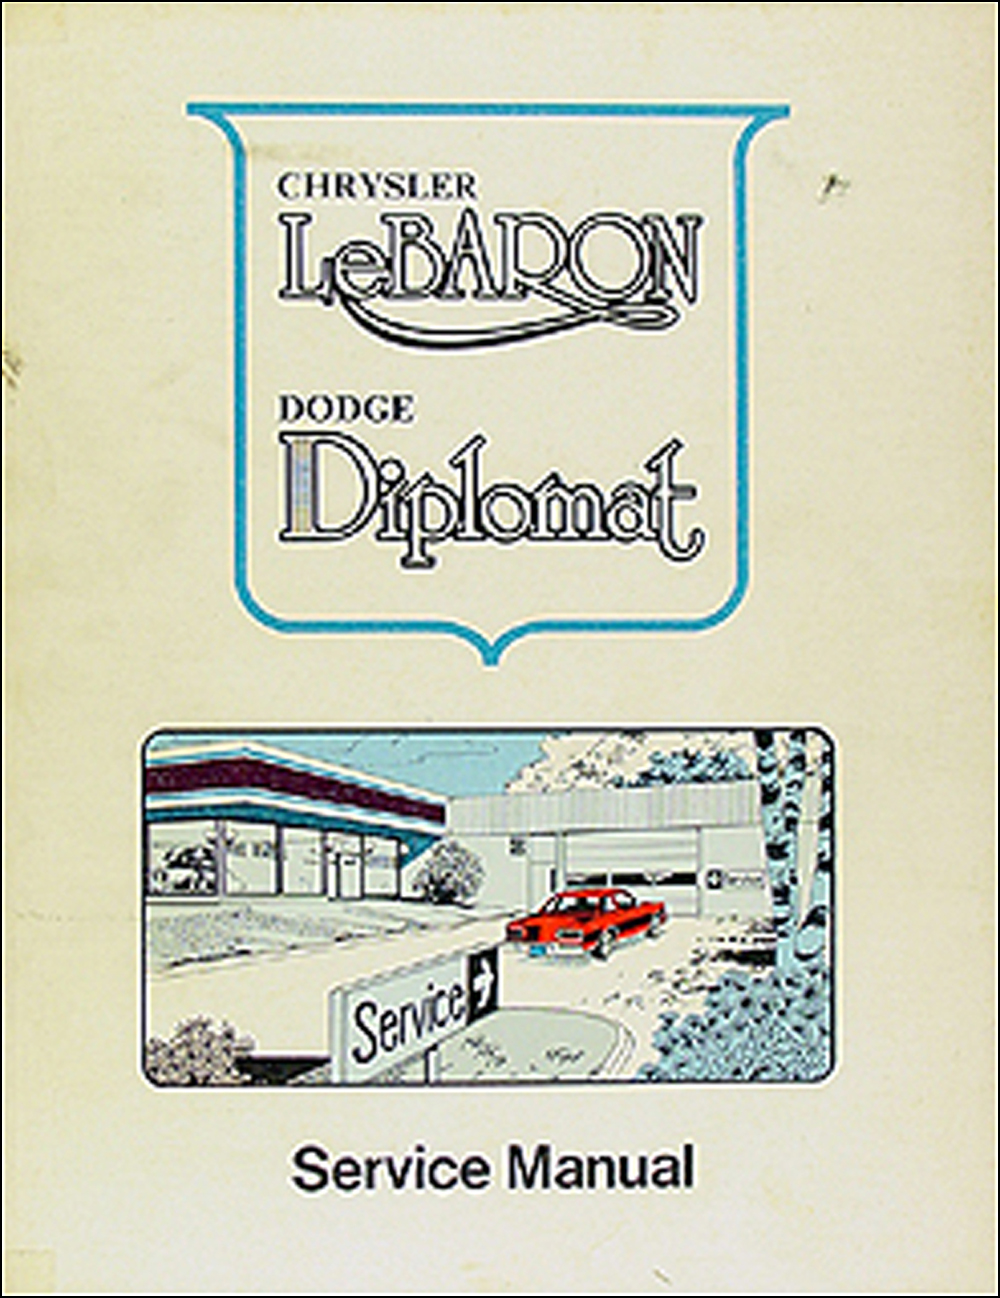 1977 Diplomat & LeBaron Repair Manual Original Supplement